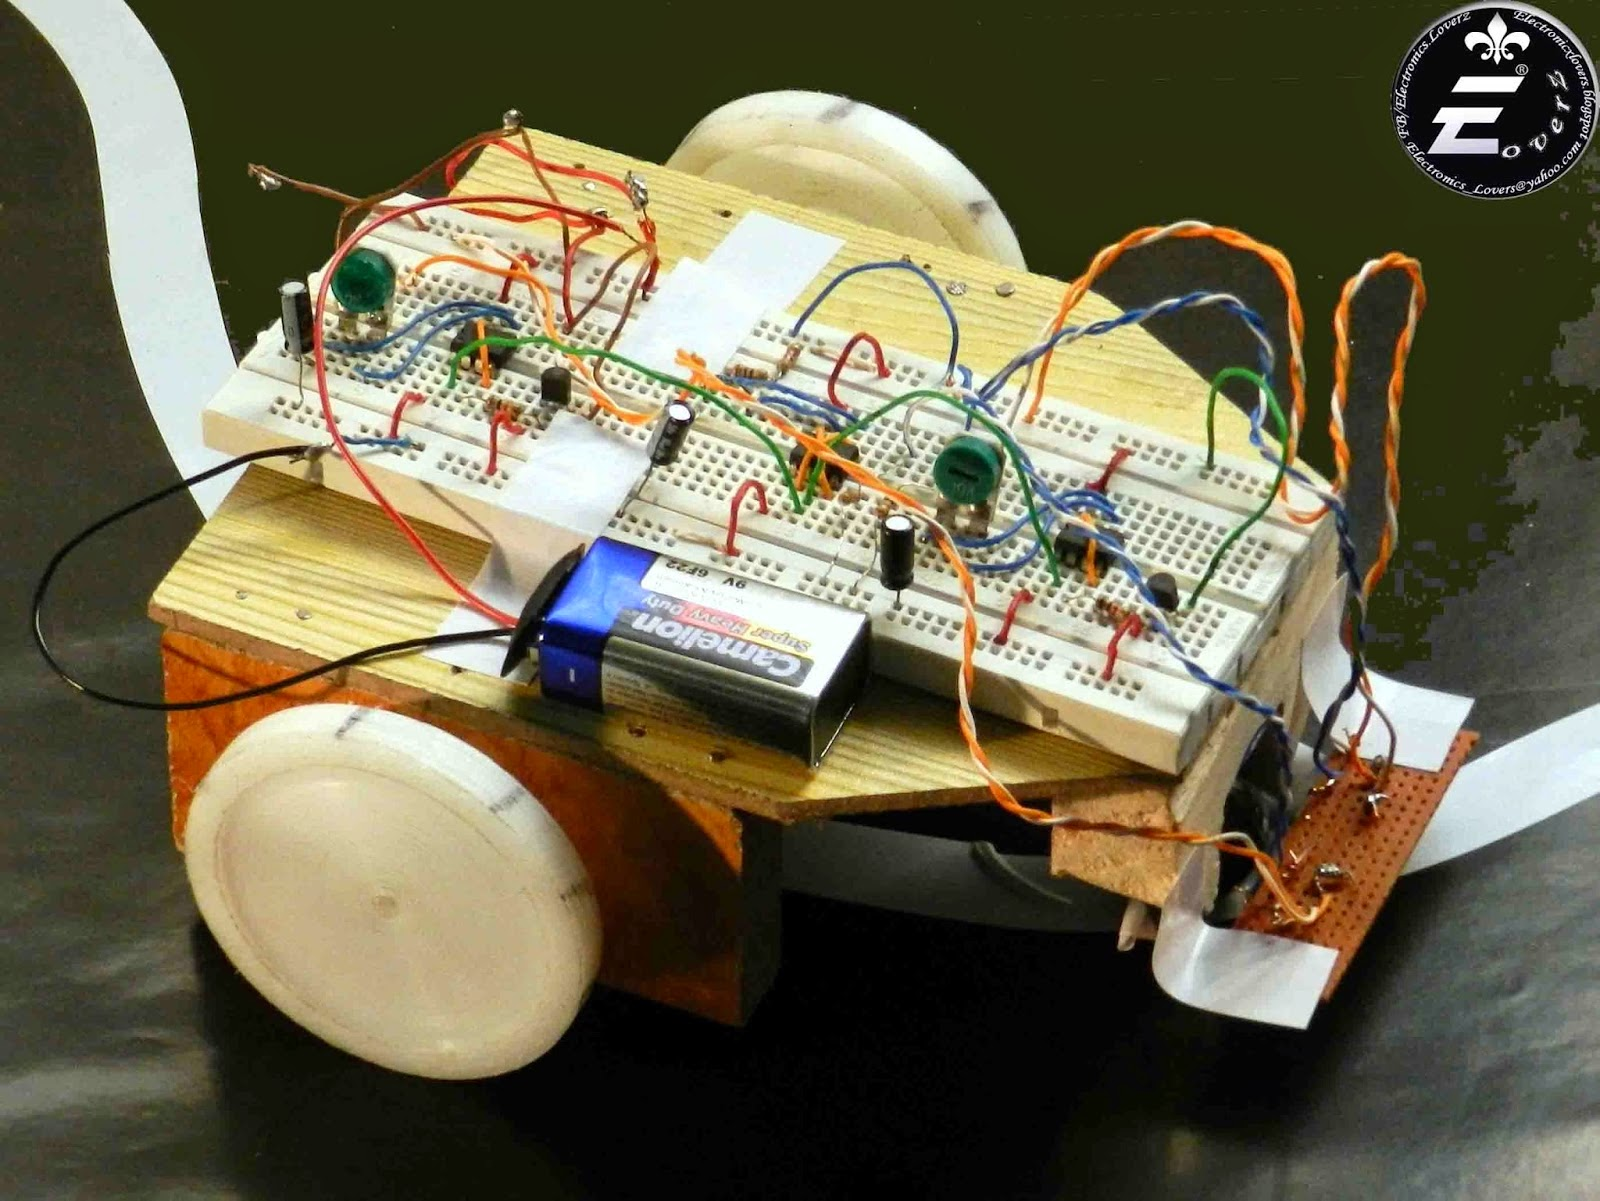 Mini Projects Related To Electrical And Electronic Engineering Circuit Project Ideas Download This Sms Based Voting System